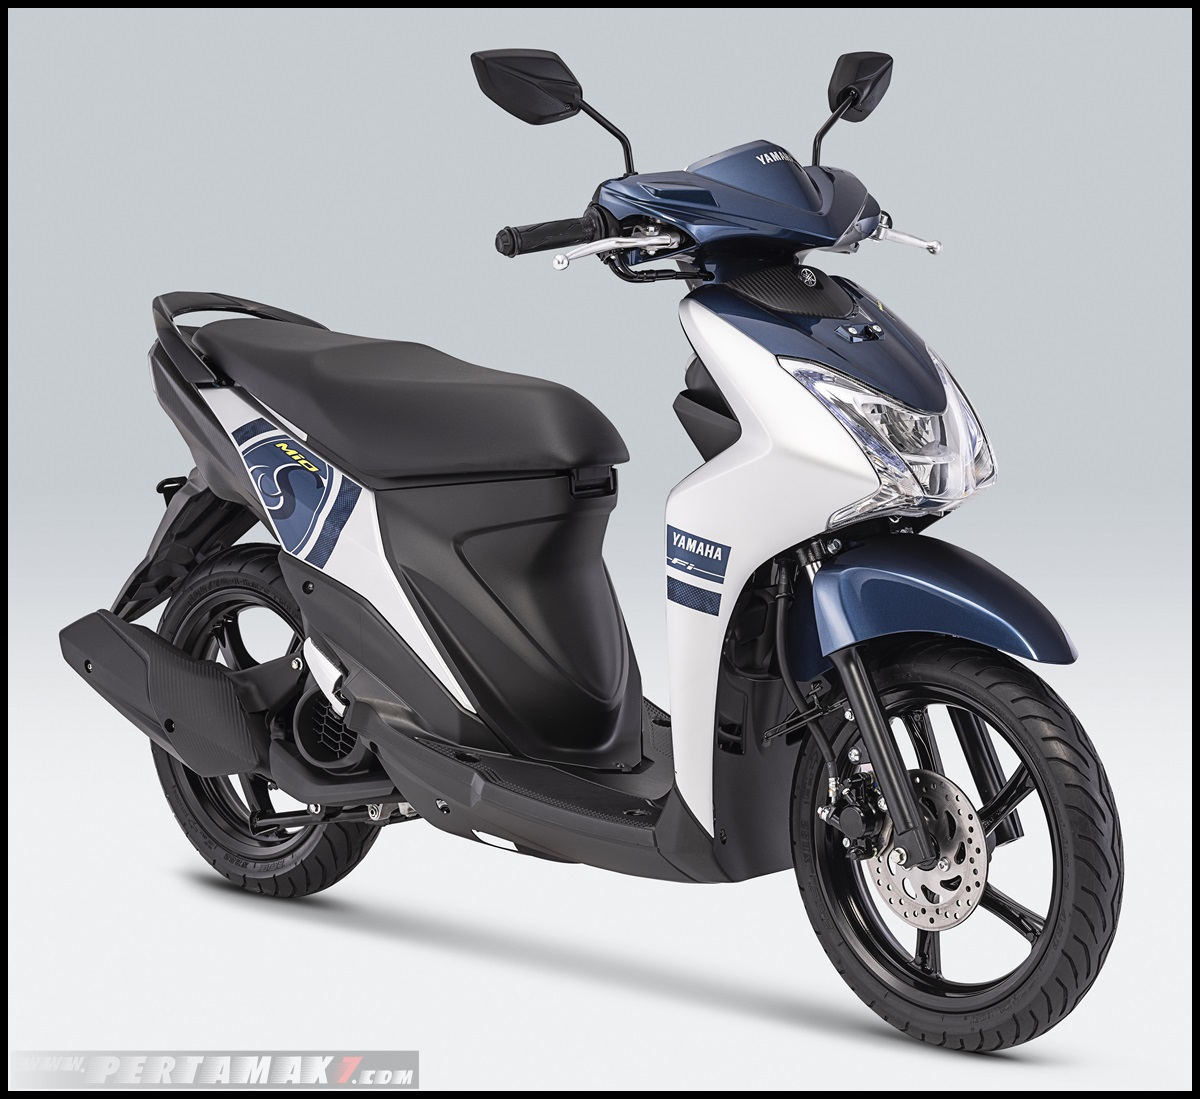 2019 Yamaha Mio S Warna Marvelous Blue